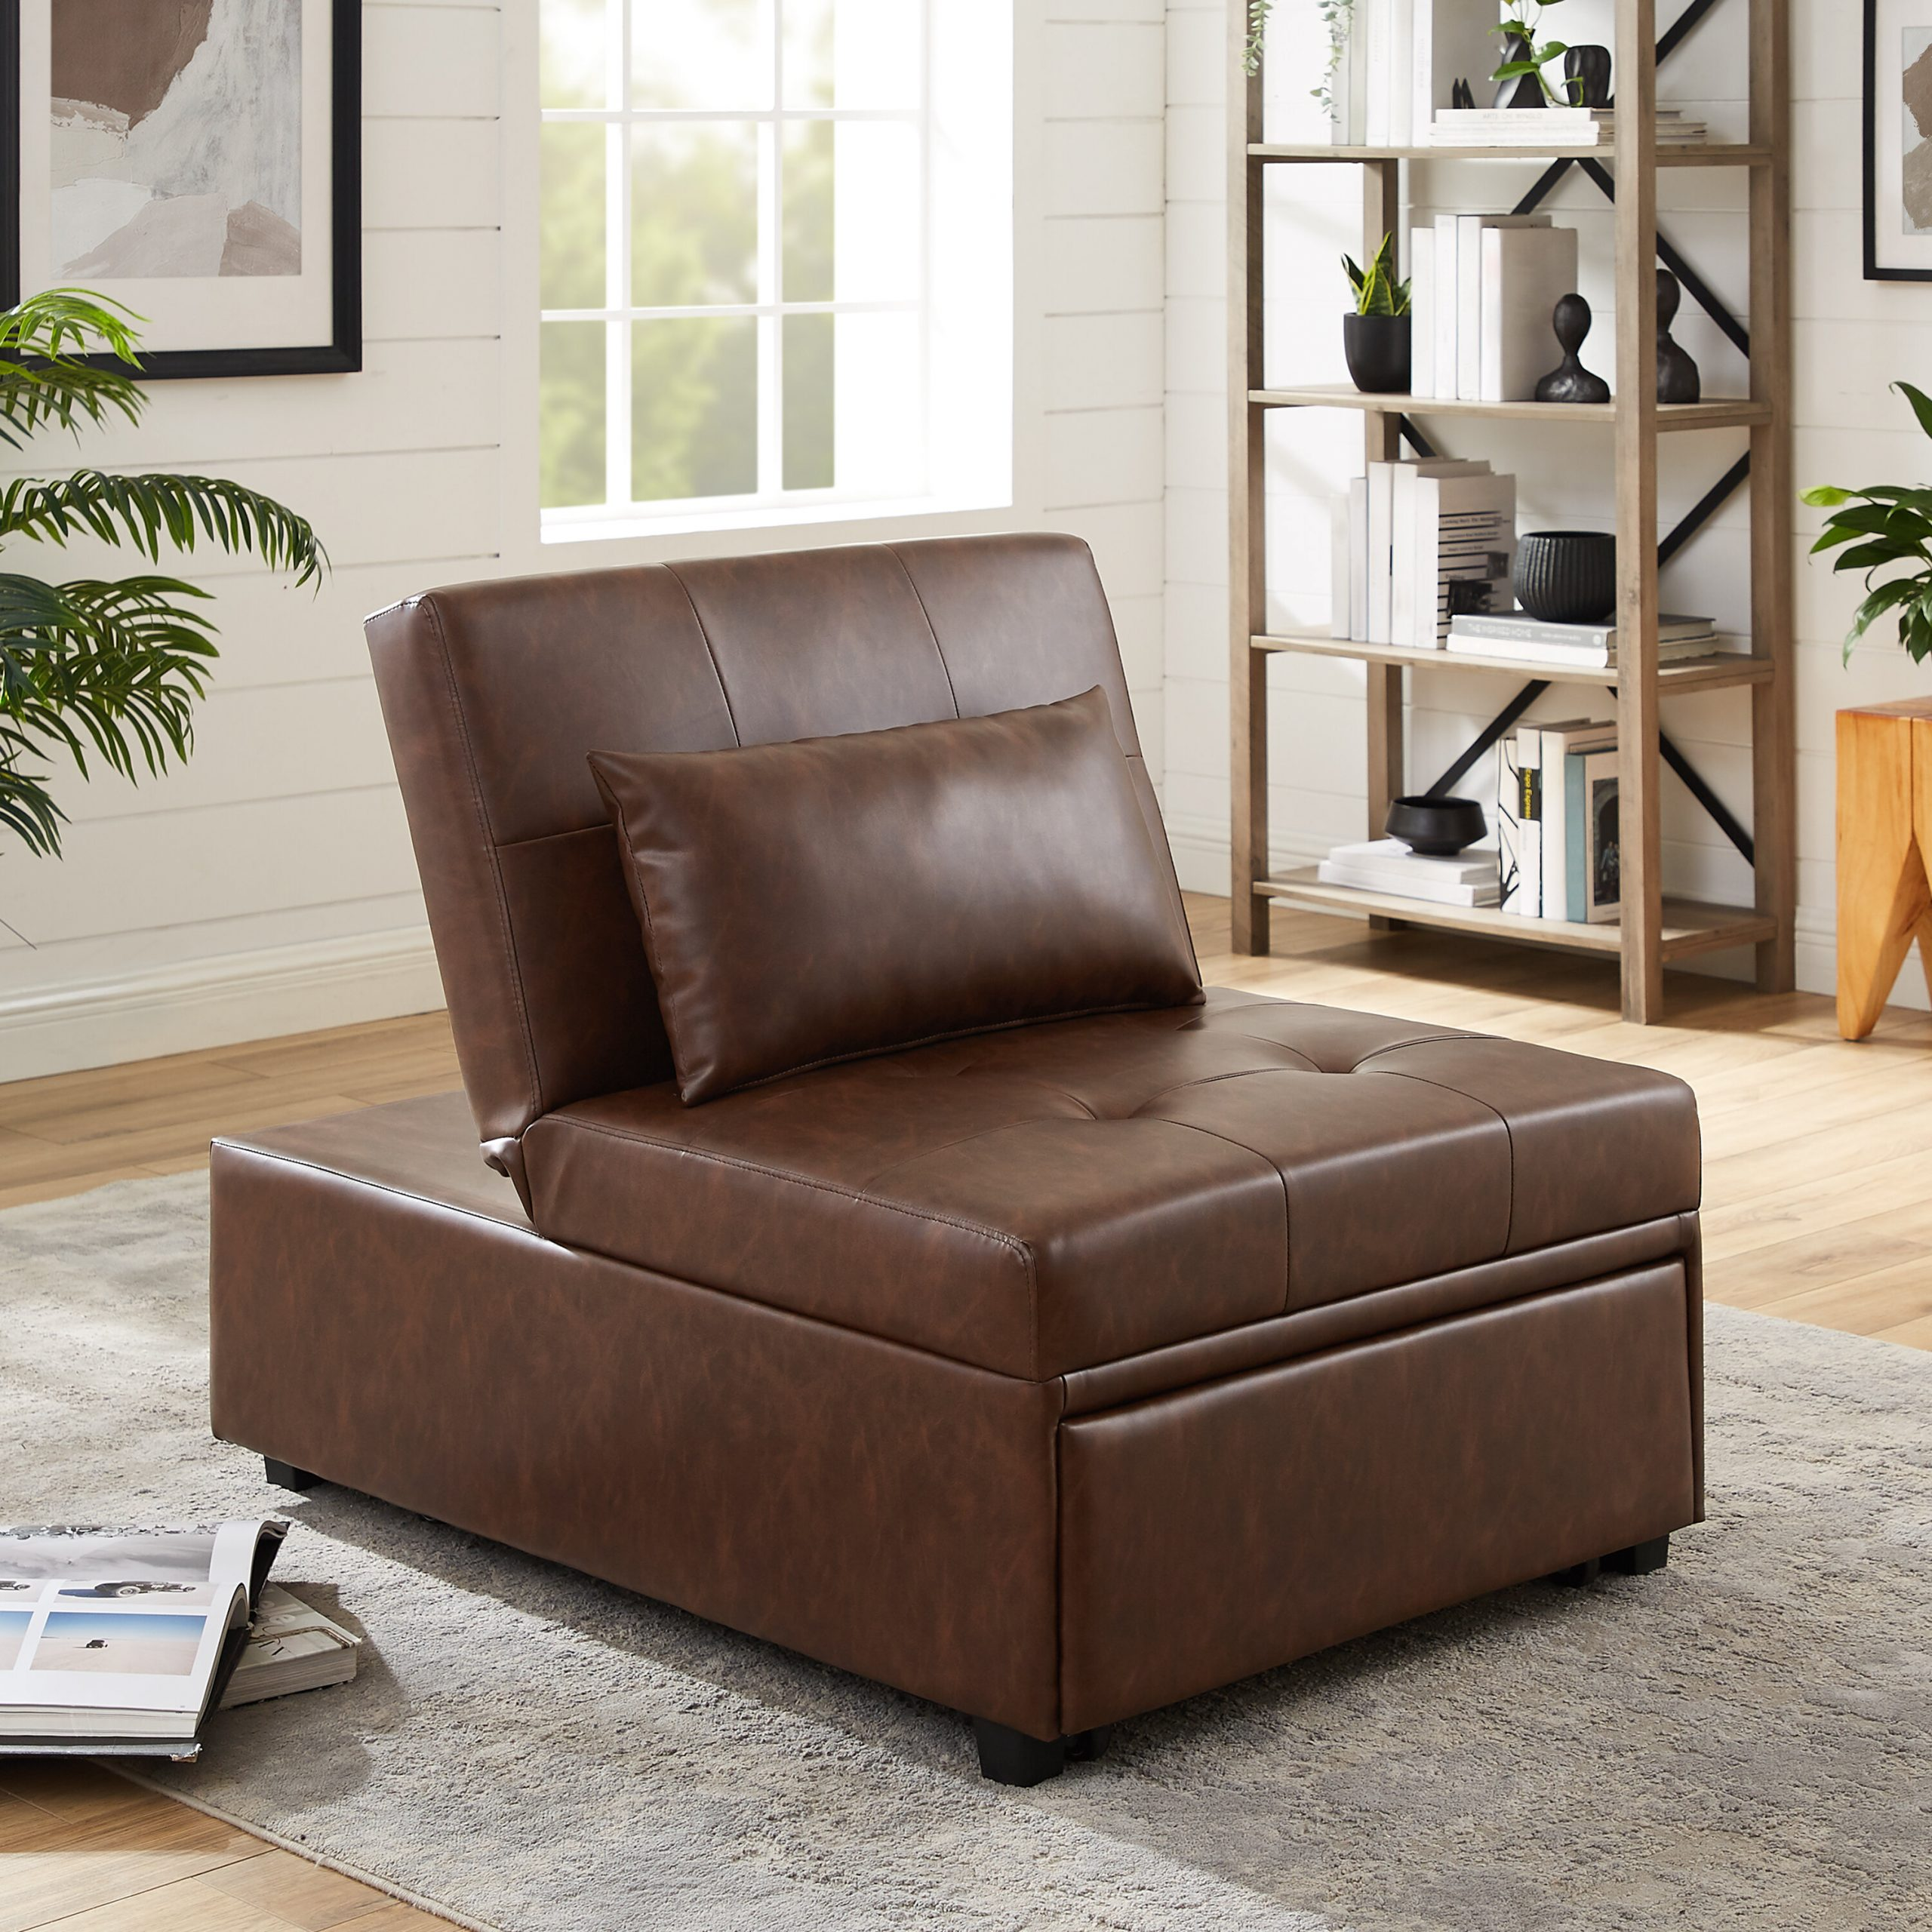 Convertible Solid Accent Chairs You'Ll Love In 2020 Pertaining To Perz Tufted Faux Leather Convertible Chairs (View 12 of 15)